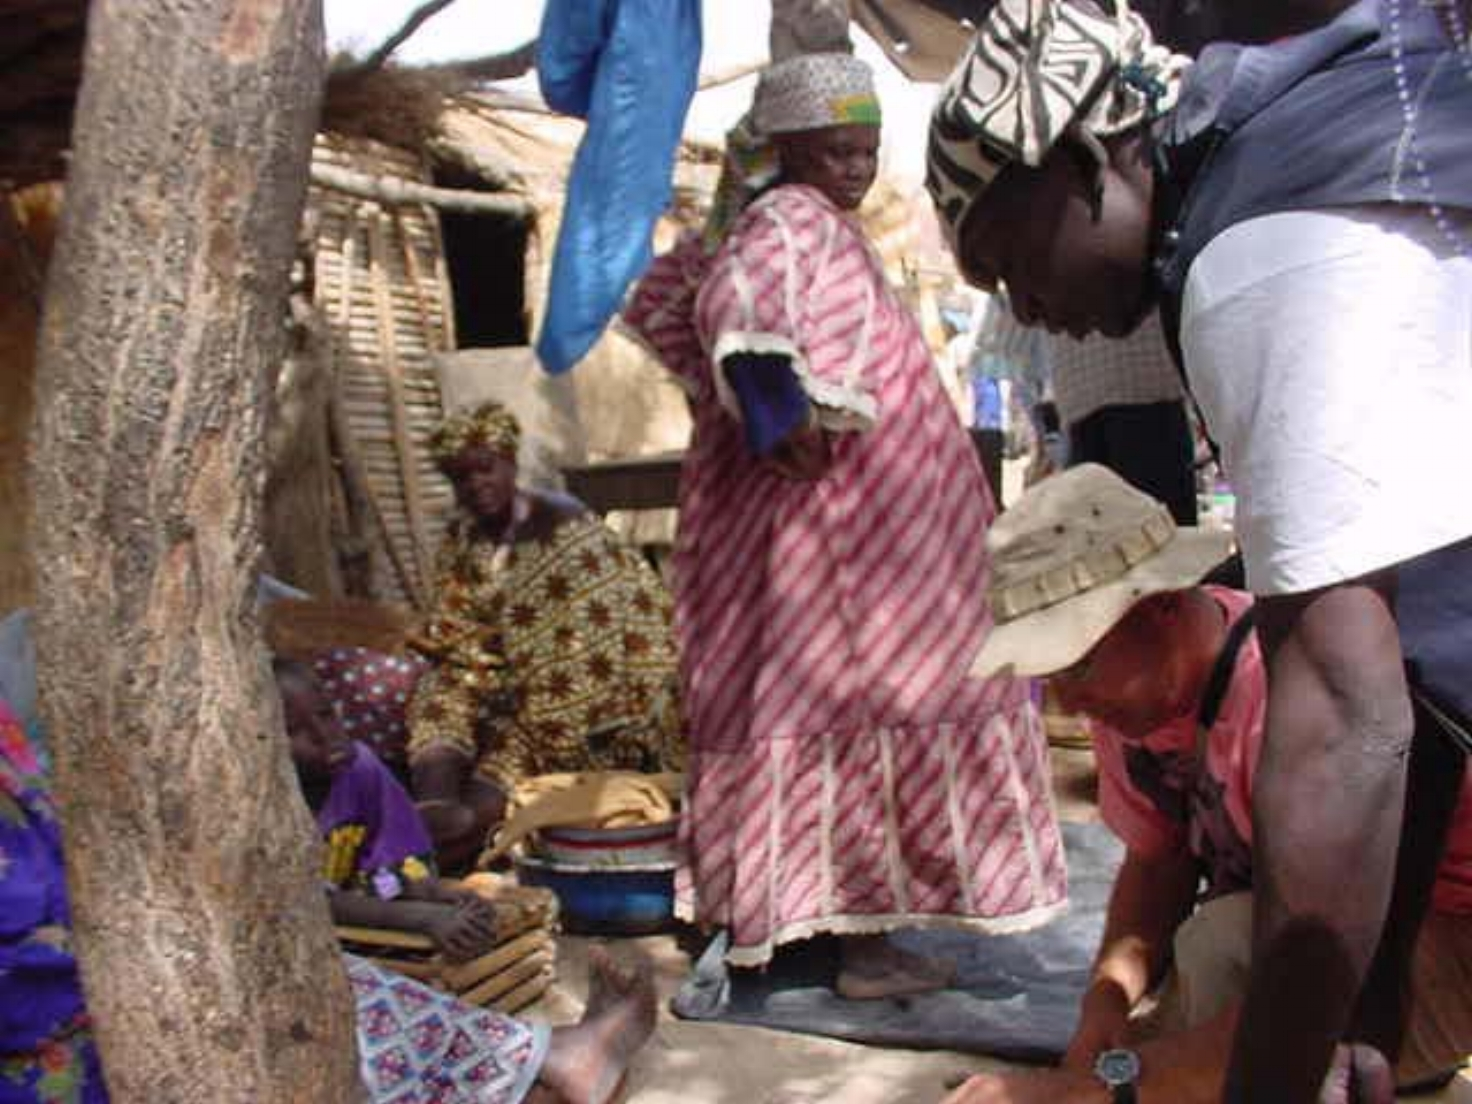 Just about everything is for sale at the market in Djenne